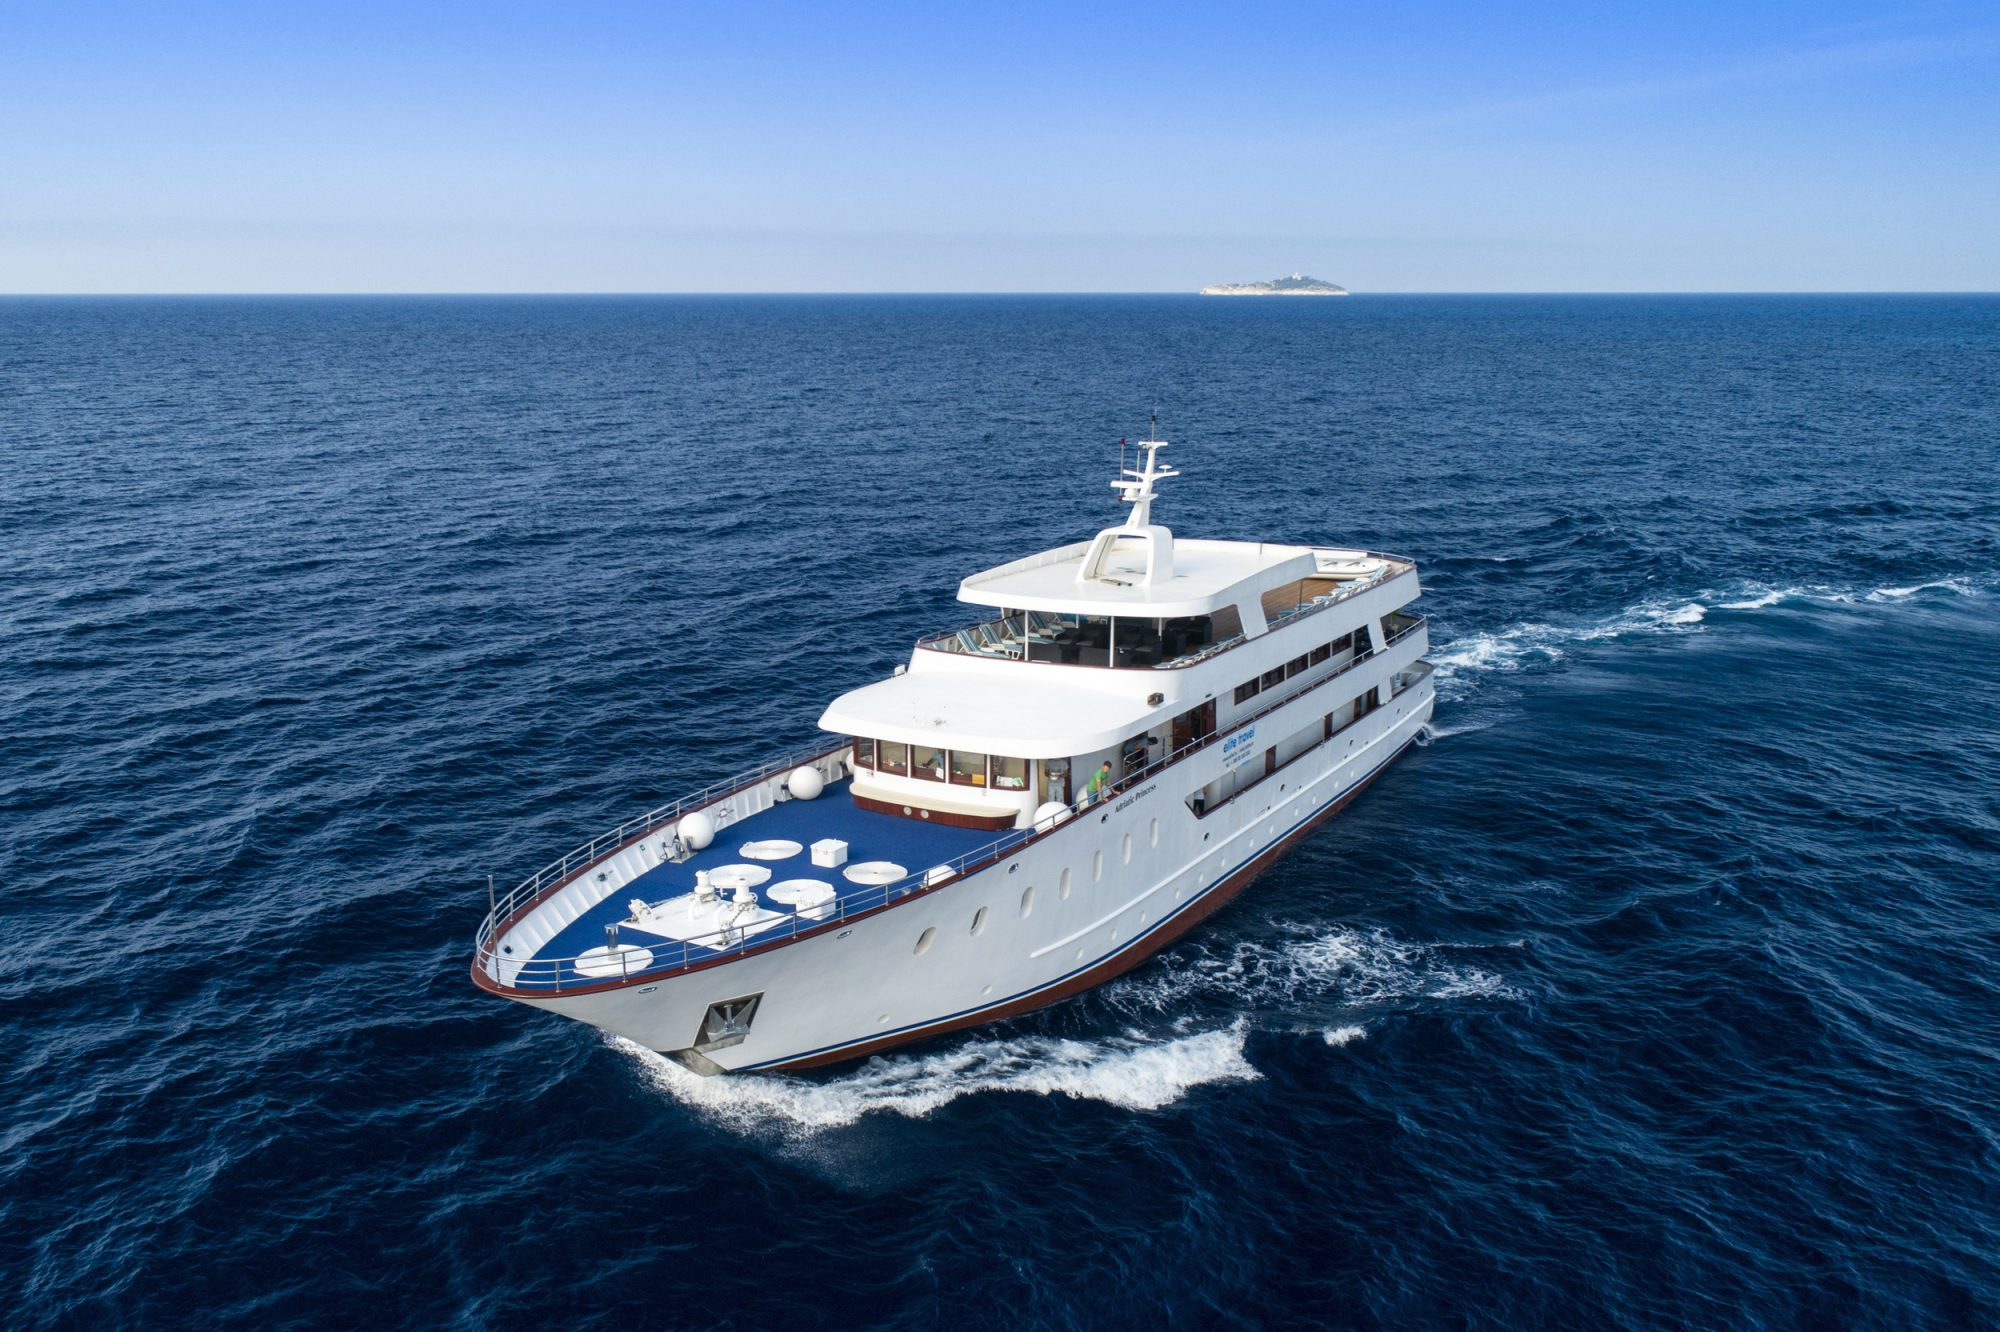 MS Adriatic Princess - Boat Reviews, Deckplan, Images & Trip ...